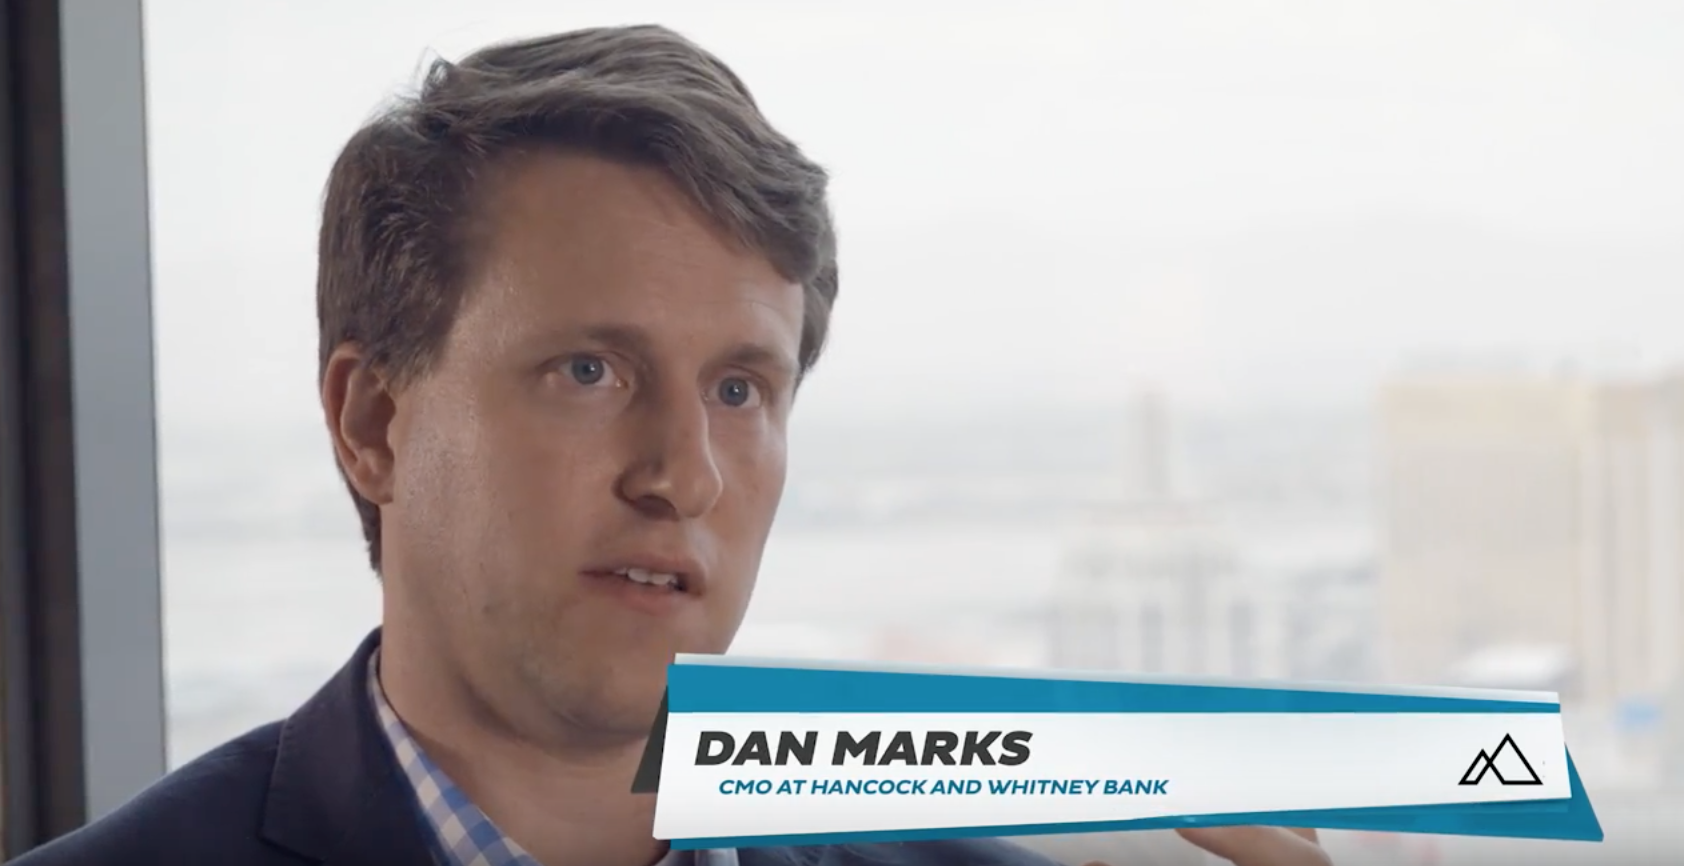 Marketing Automation, HubSpot, and Effective Campaigns: A Conversation With Dan Marks